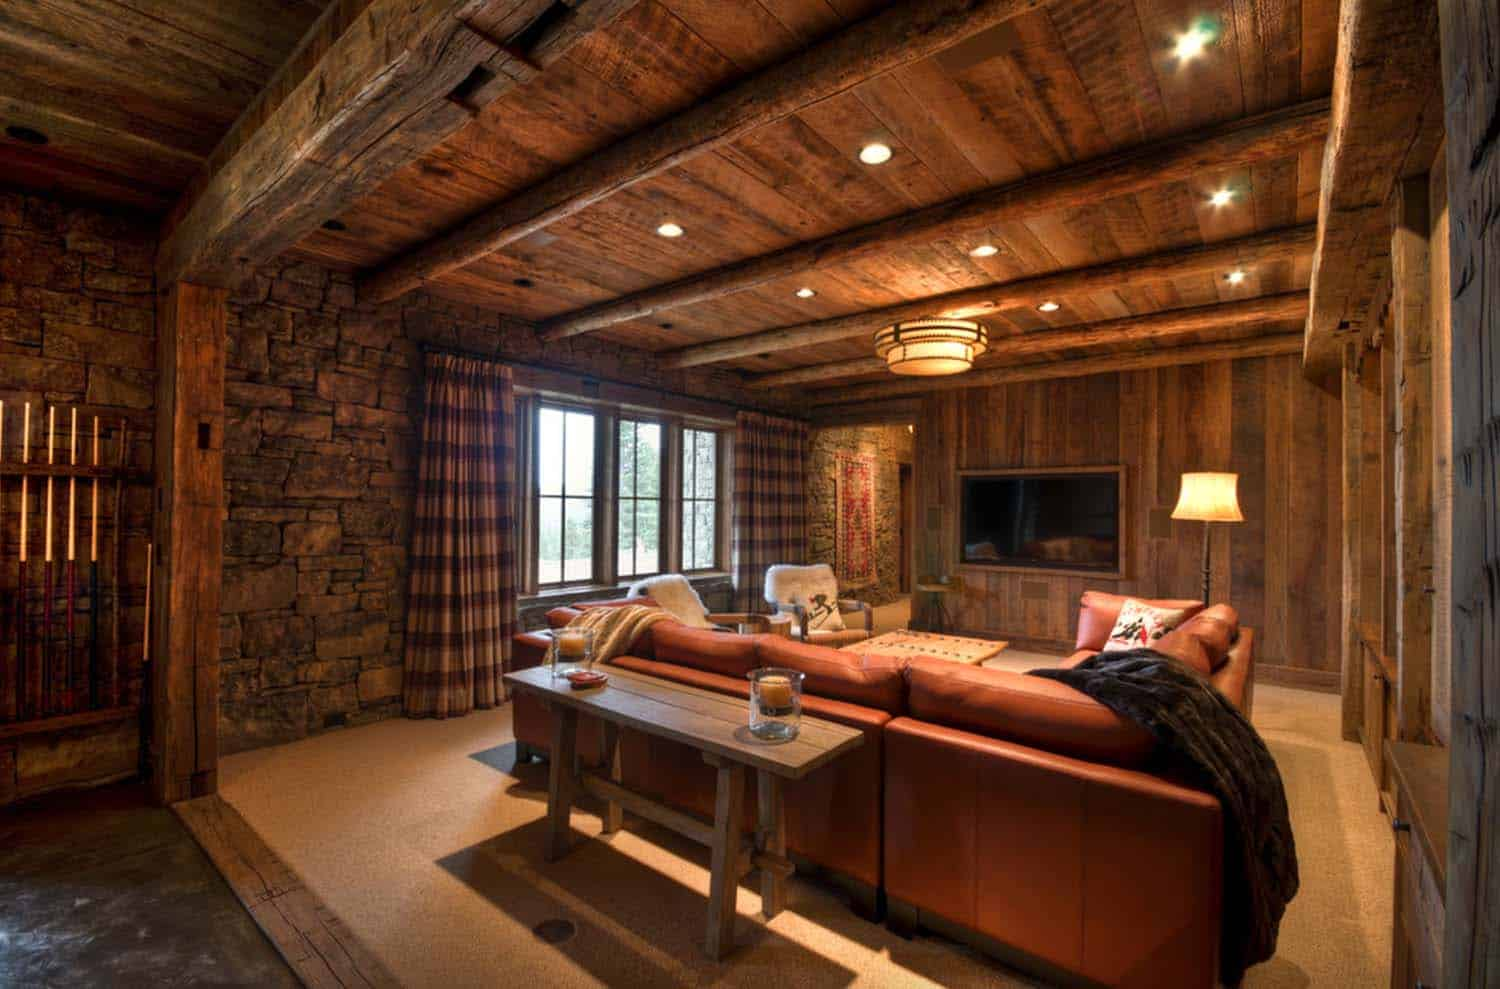 Rustic Mountain Home-Laura Fedro Interiors-23-1 Kindesign